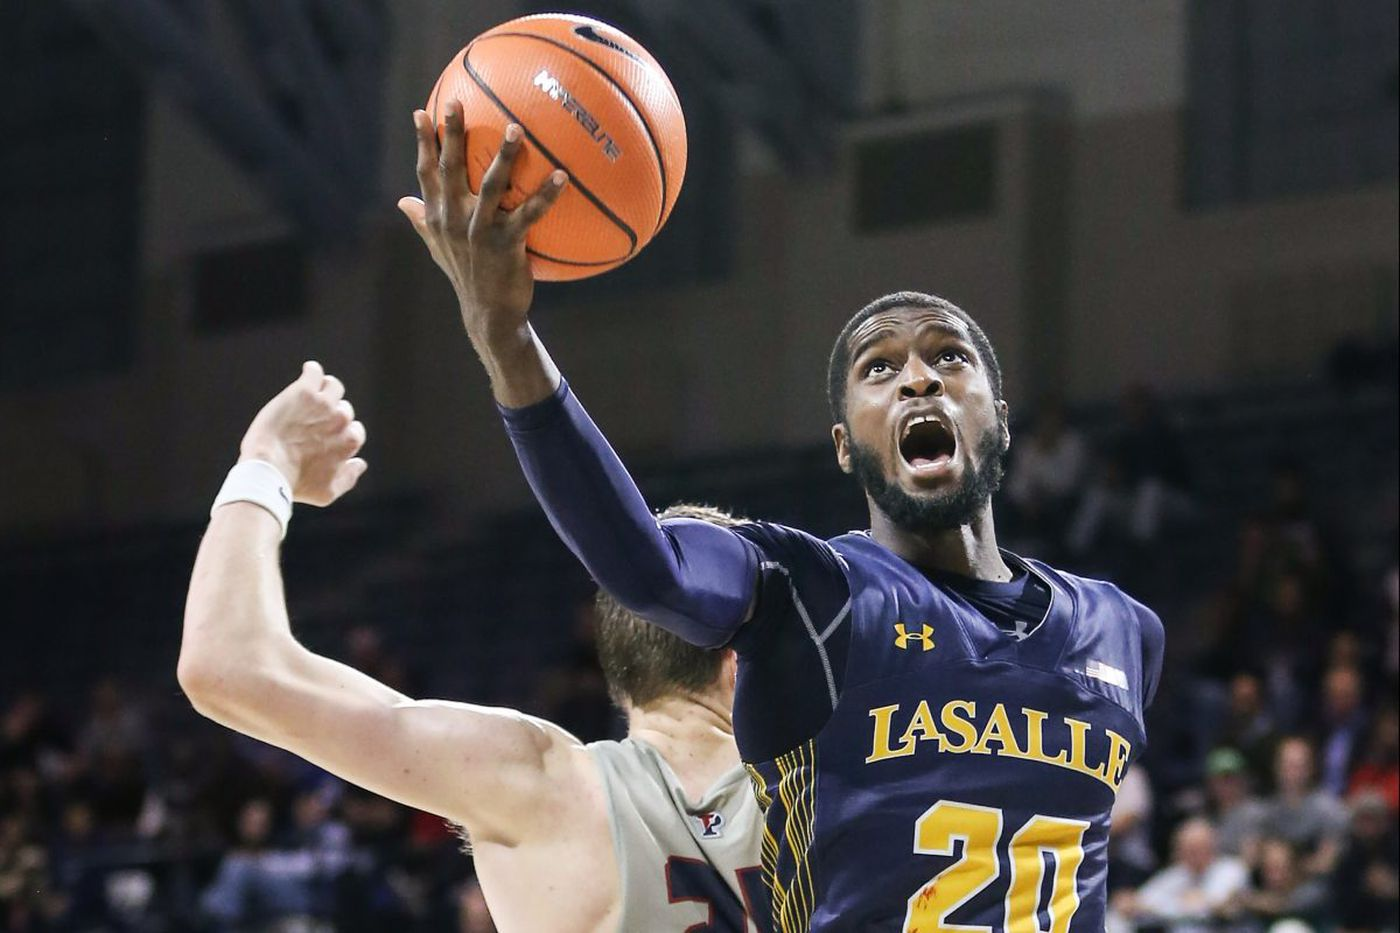 A Palestra thriller between Penn and La Salle, two interesting works in progress | Mike Jensen